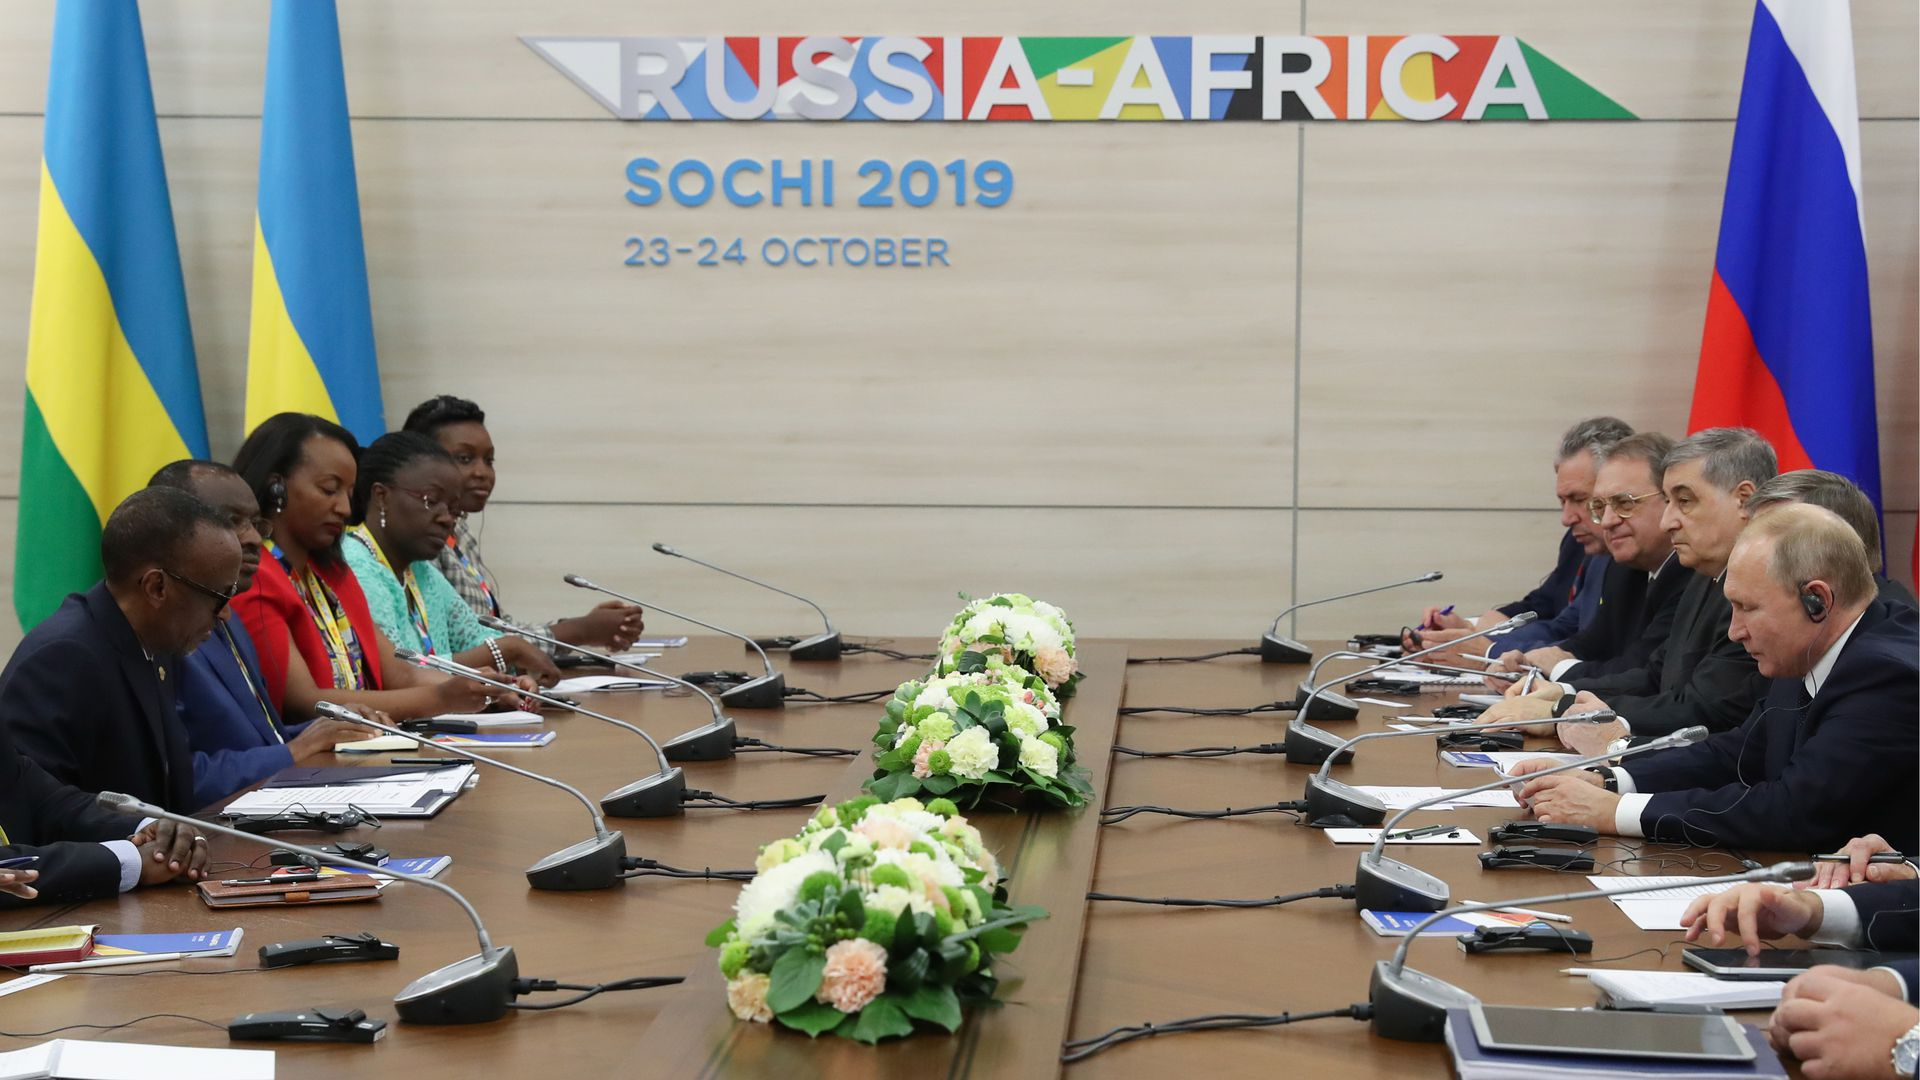 Putin, Kagame and fellow Russian and Rwandan officials seated across a conference table